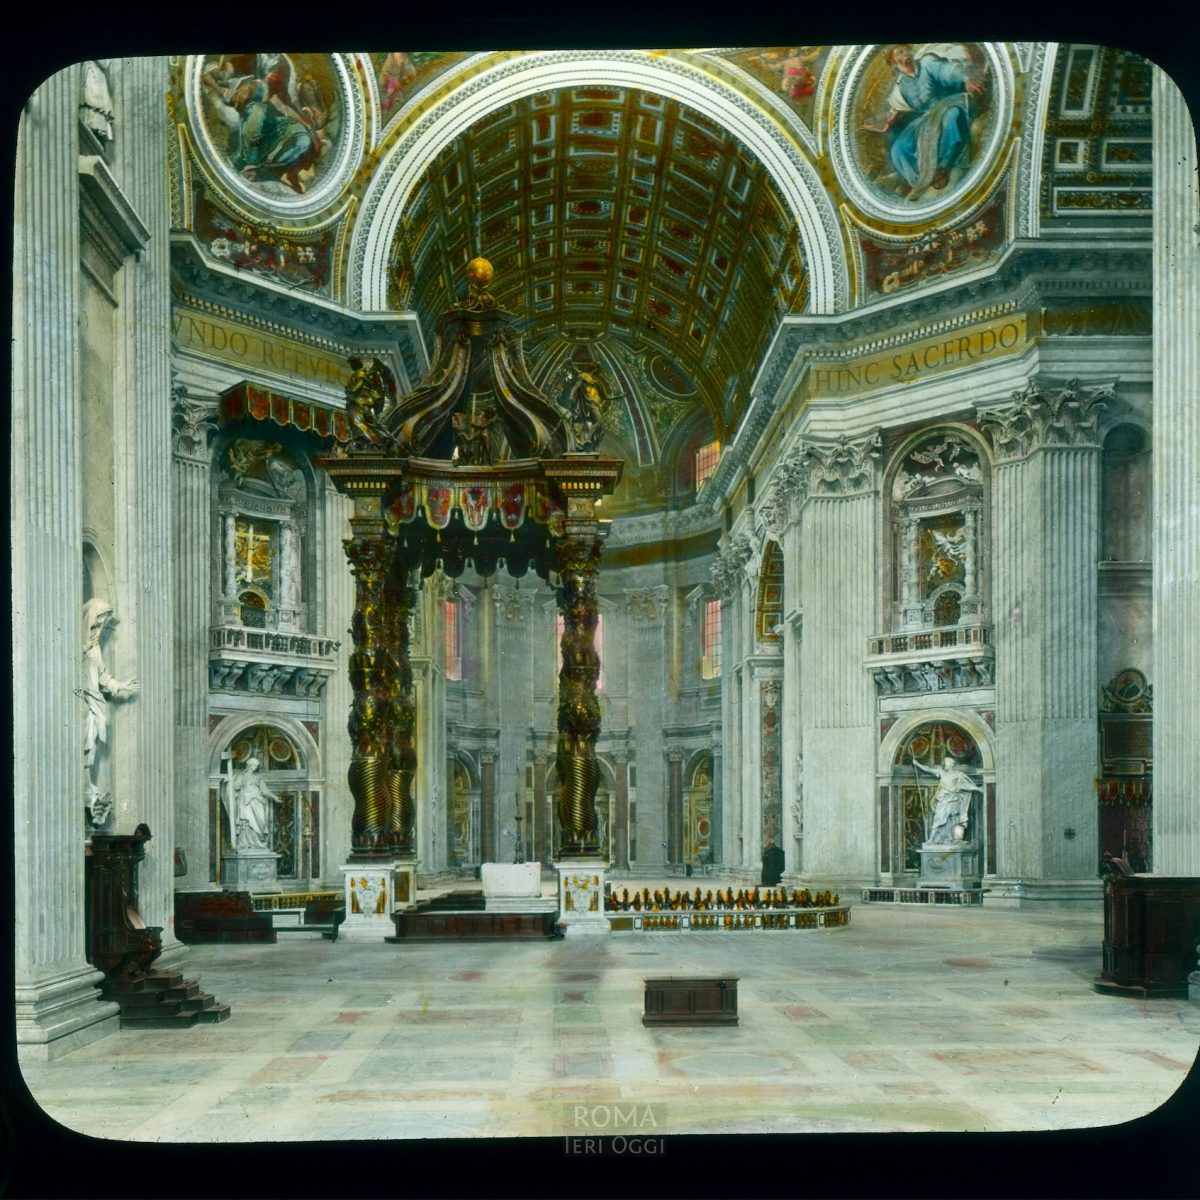 Vatican City. St. Peter's Basilica: interior, view towards baldachin and right transept View in tinted lantern slide, ca. 1919-1938. The basilica dates from ca. 1506-1626.